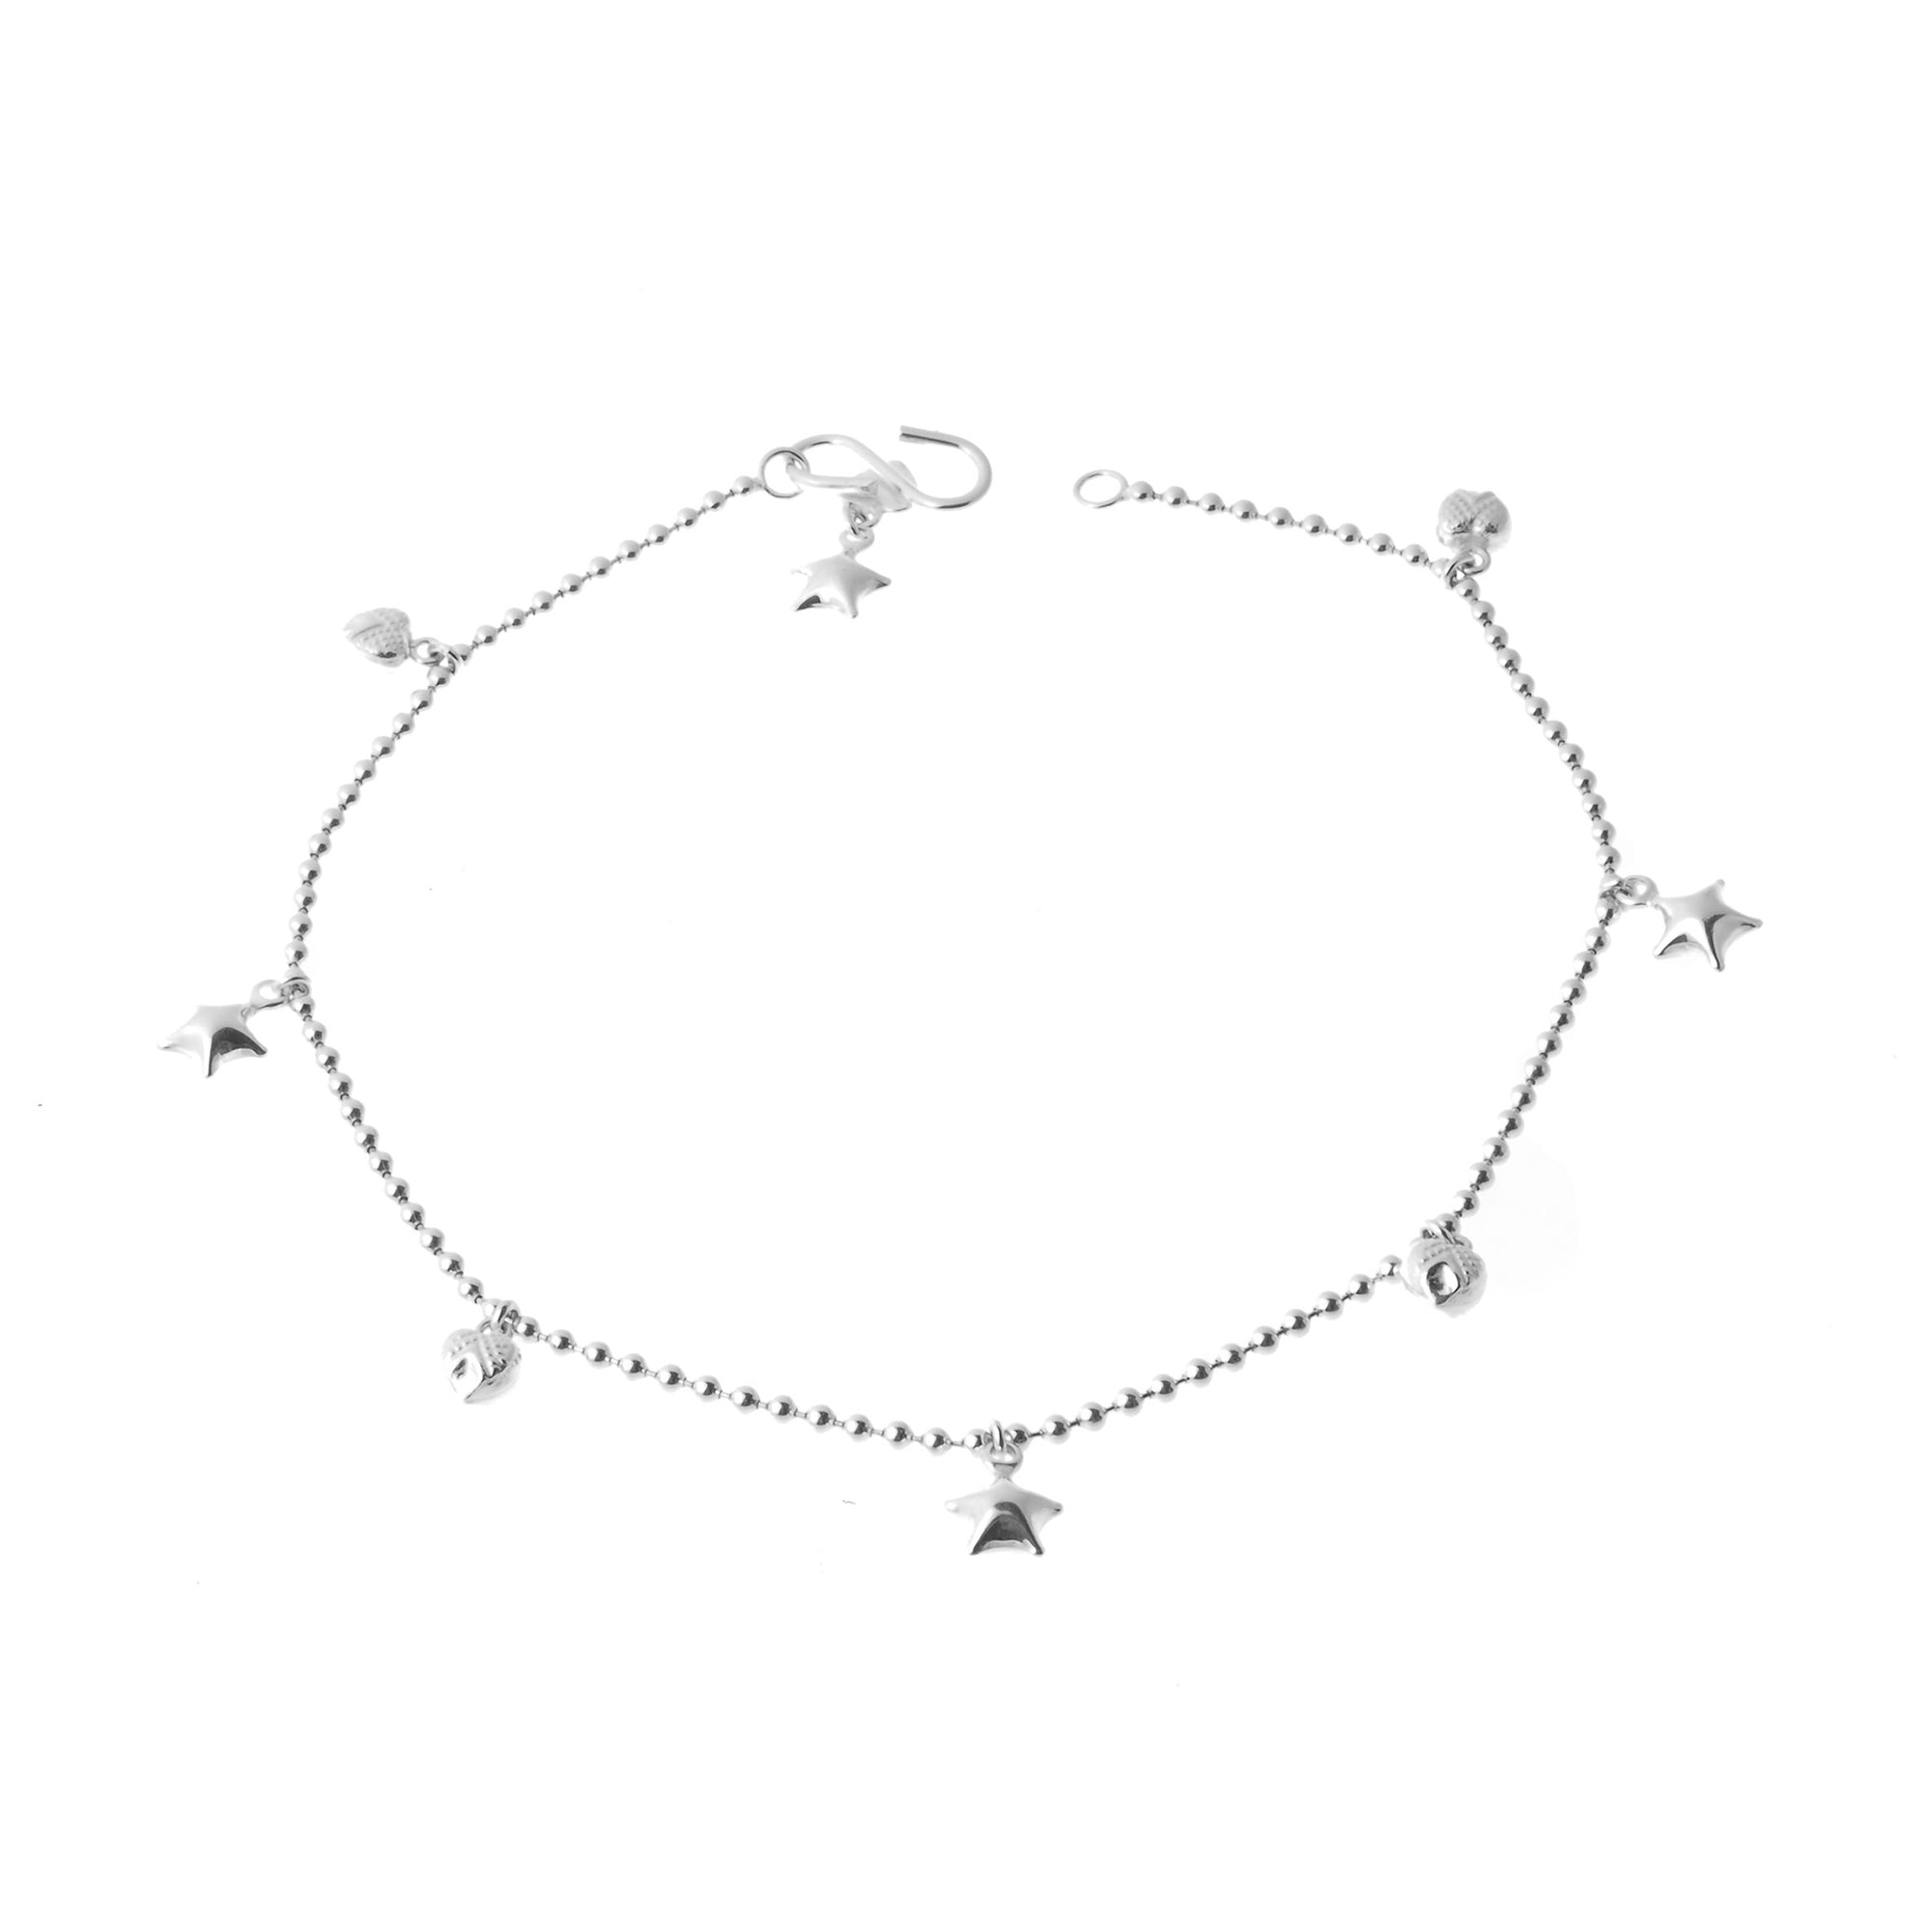 Sterling Silver Beaded Anklets with Heart and Star Bell Charms A-7159 - Single